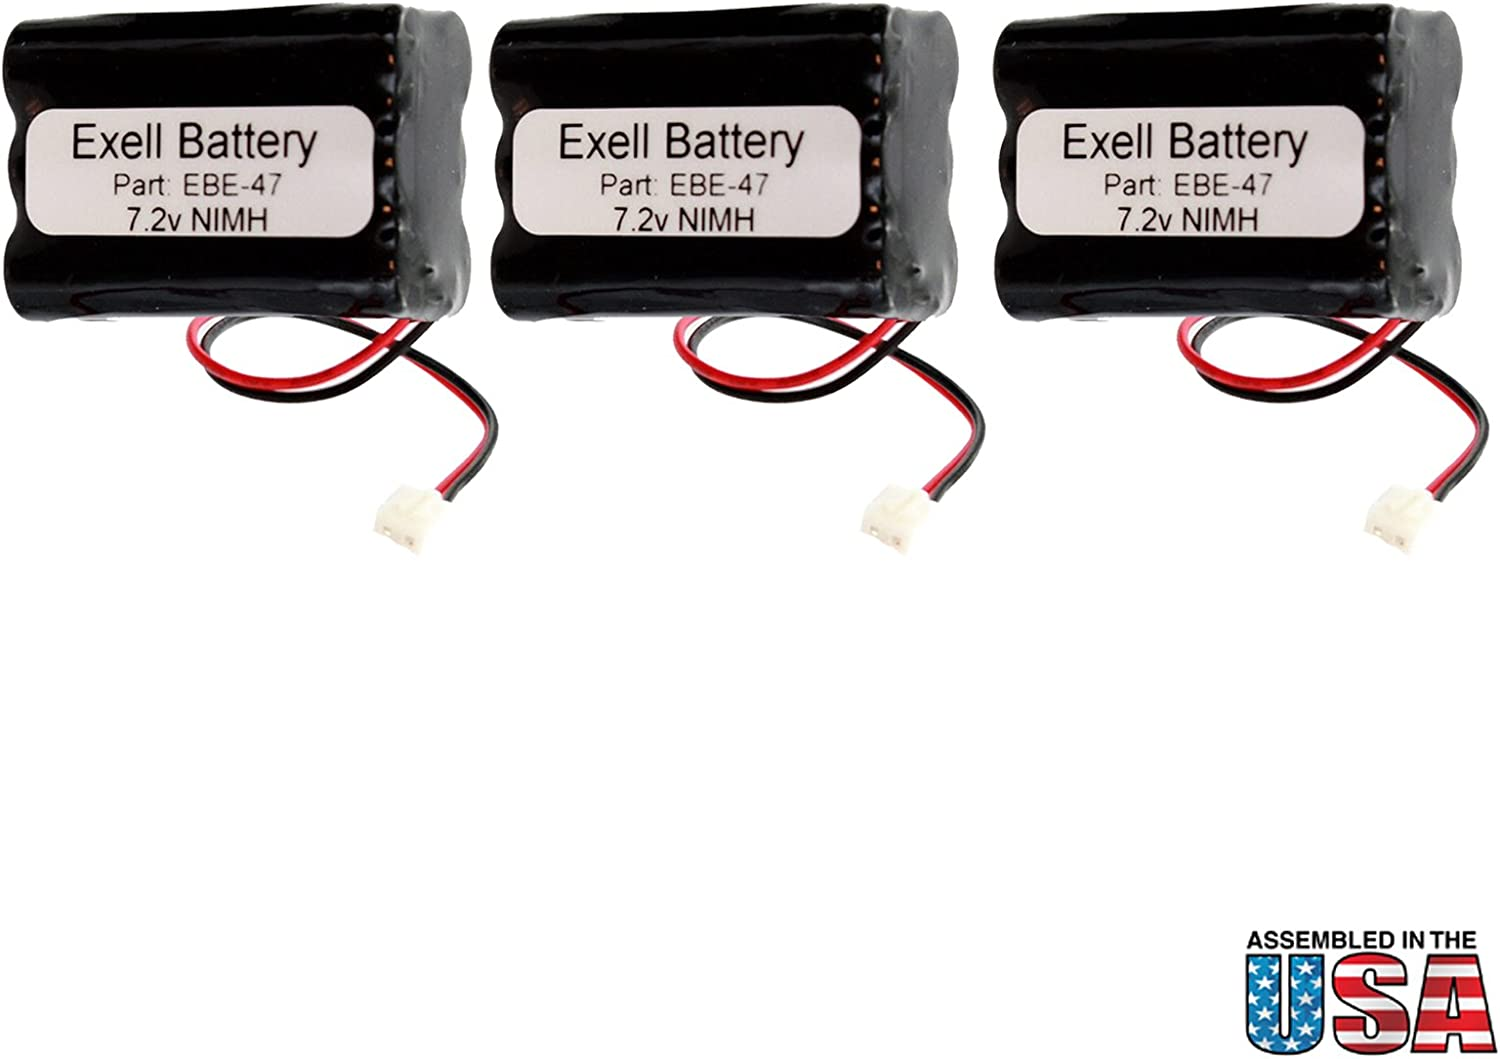 (3-Pack) Emergency/Exit Lighting Battery Fits und Replaces Interstate Anic0191, Iti 34-051, Sanyo 34051, Sanyo 6Hraaau, Sanyo 6Hraaau34051 Fast Usa Ship